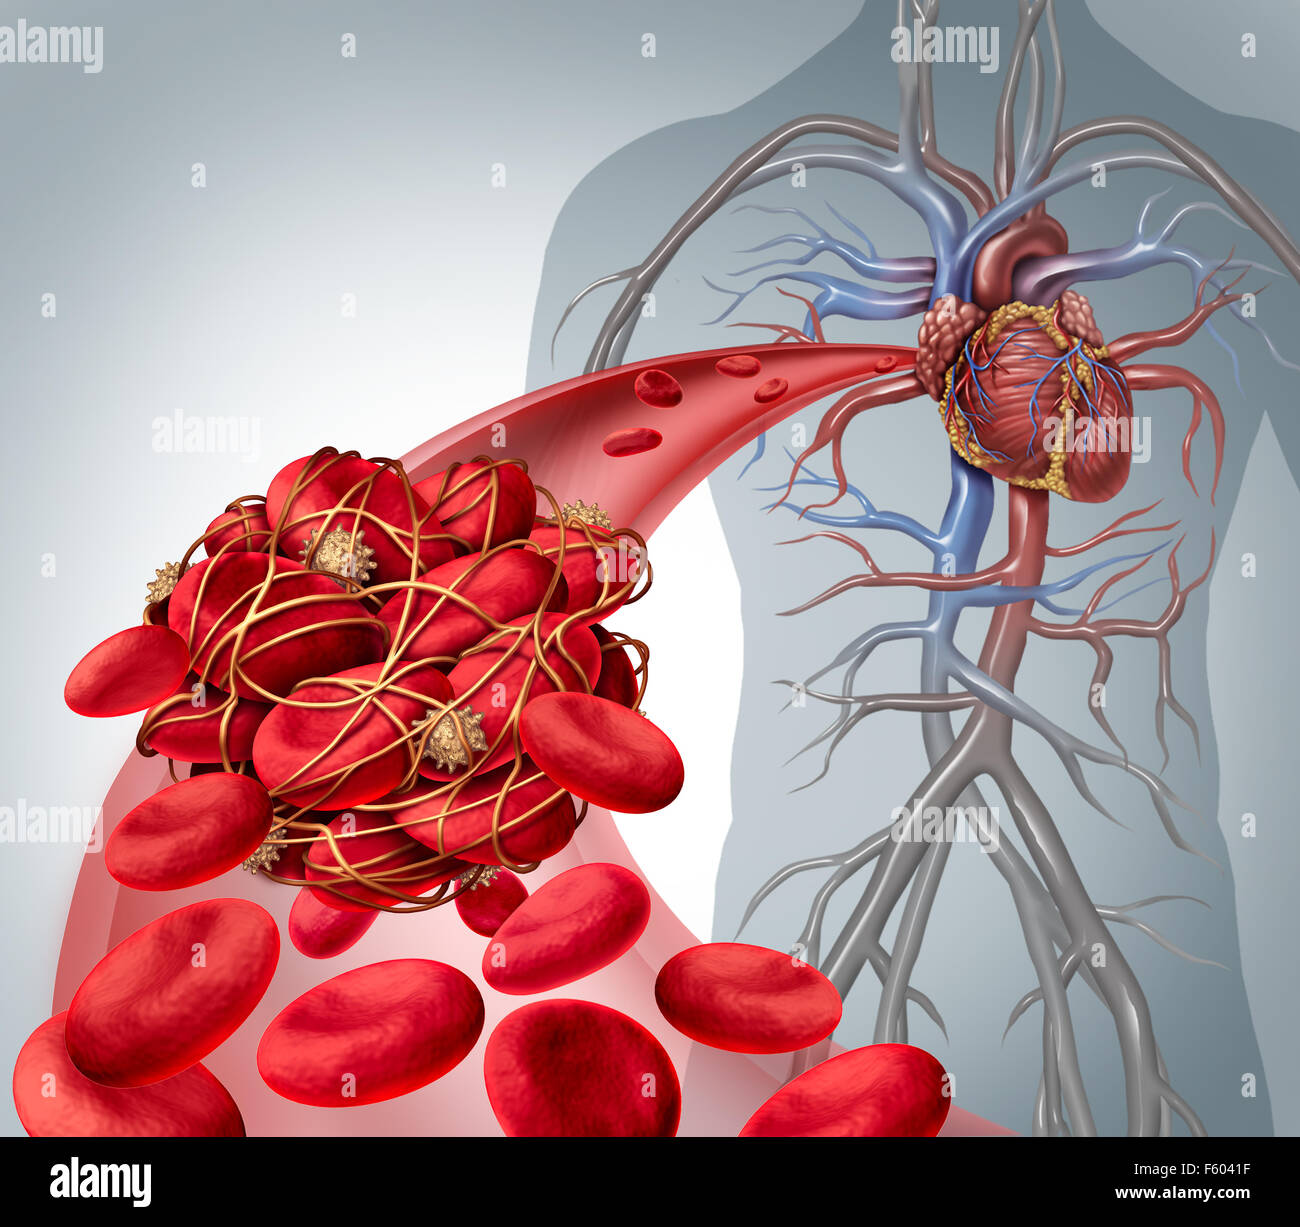 Blood clot risk and clot or thrombosis medical illustration symbol as a group of human blood cells clumped together - Stock Image